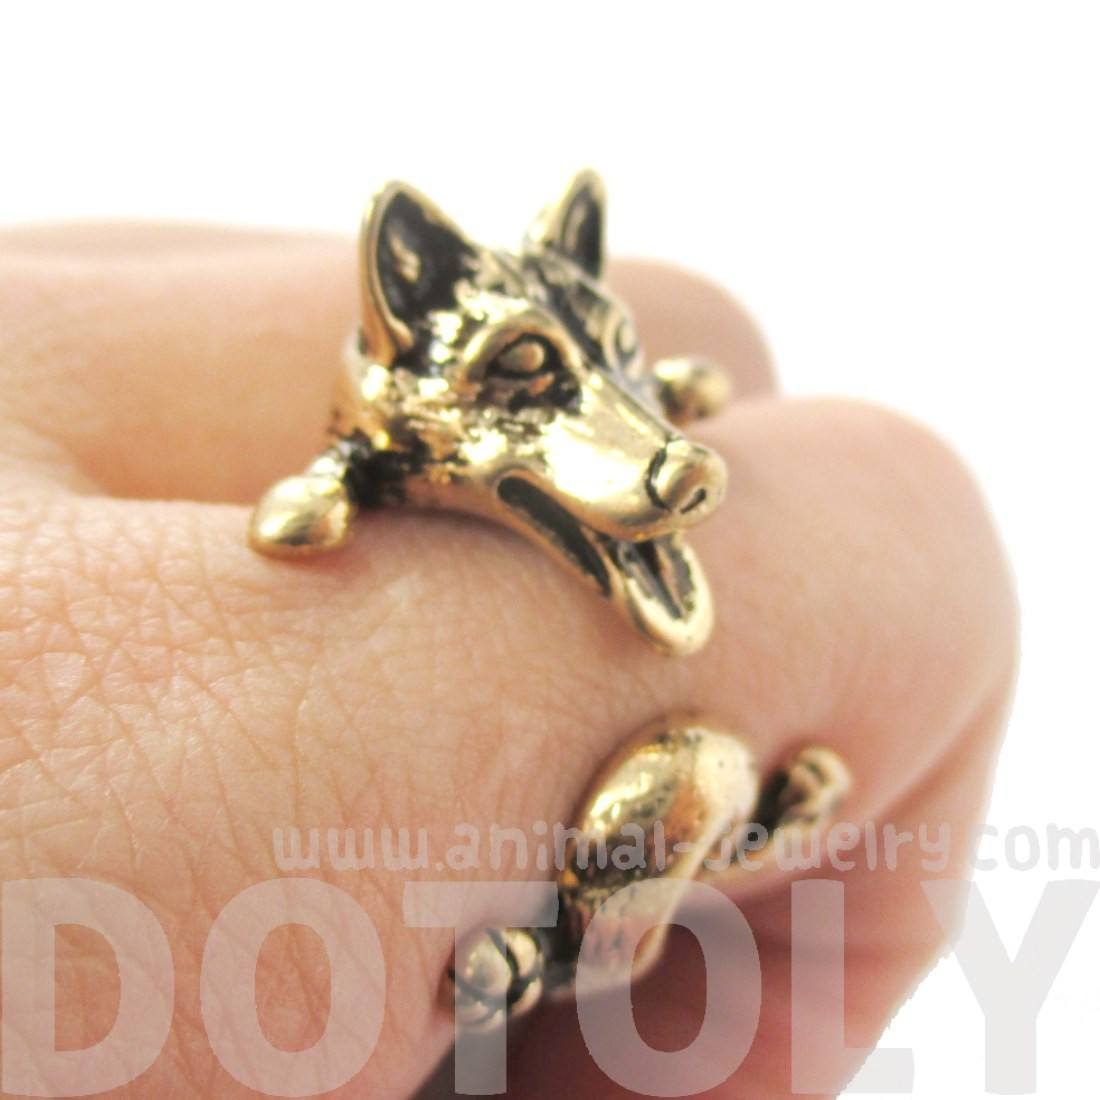 Siberian Husky Dog Shaped Animal Wrap Ring in Shiny Gold